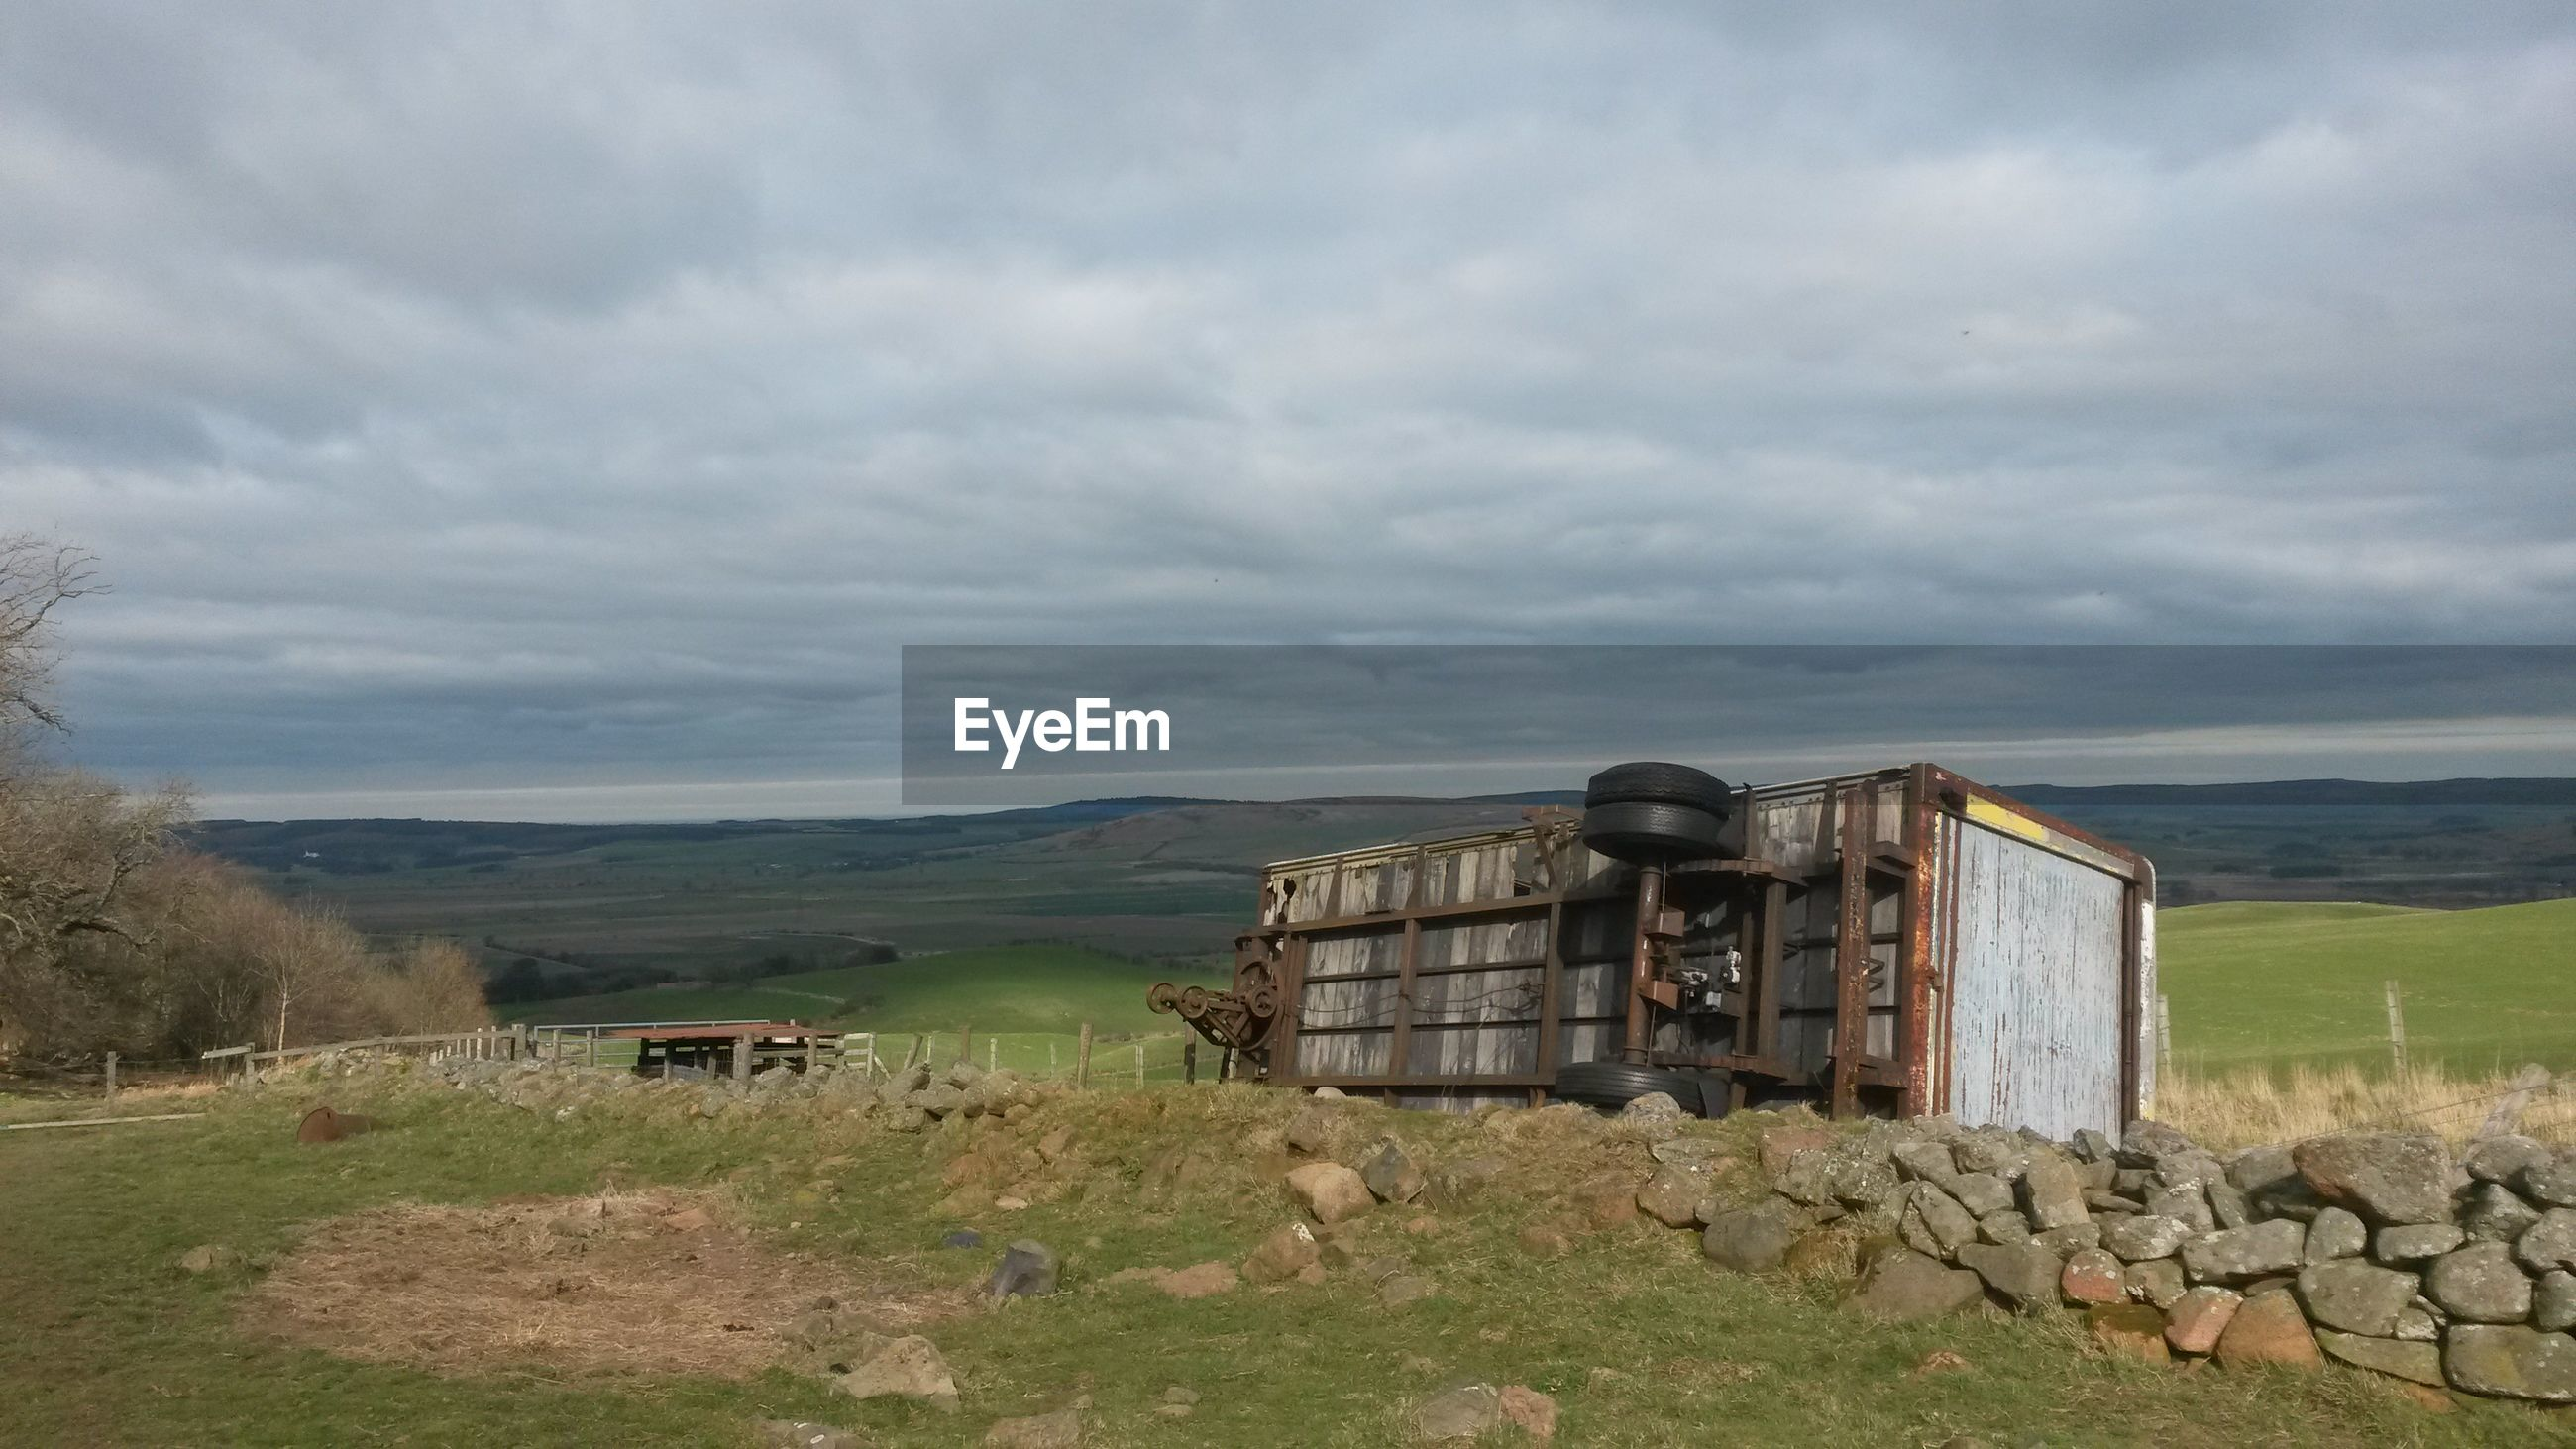 Abandoned trailer on field against cloudy sky